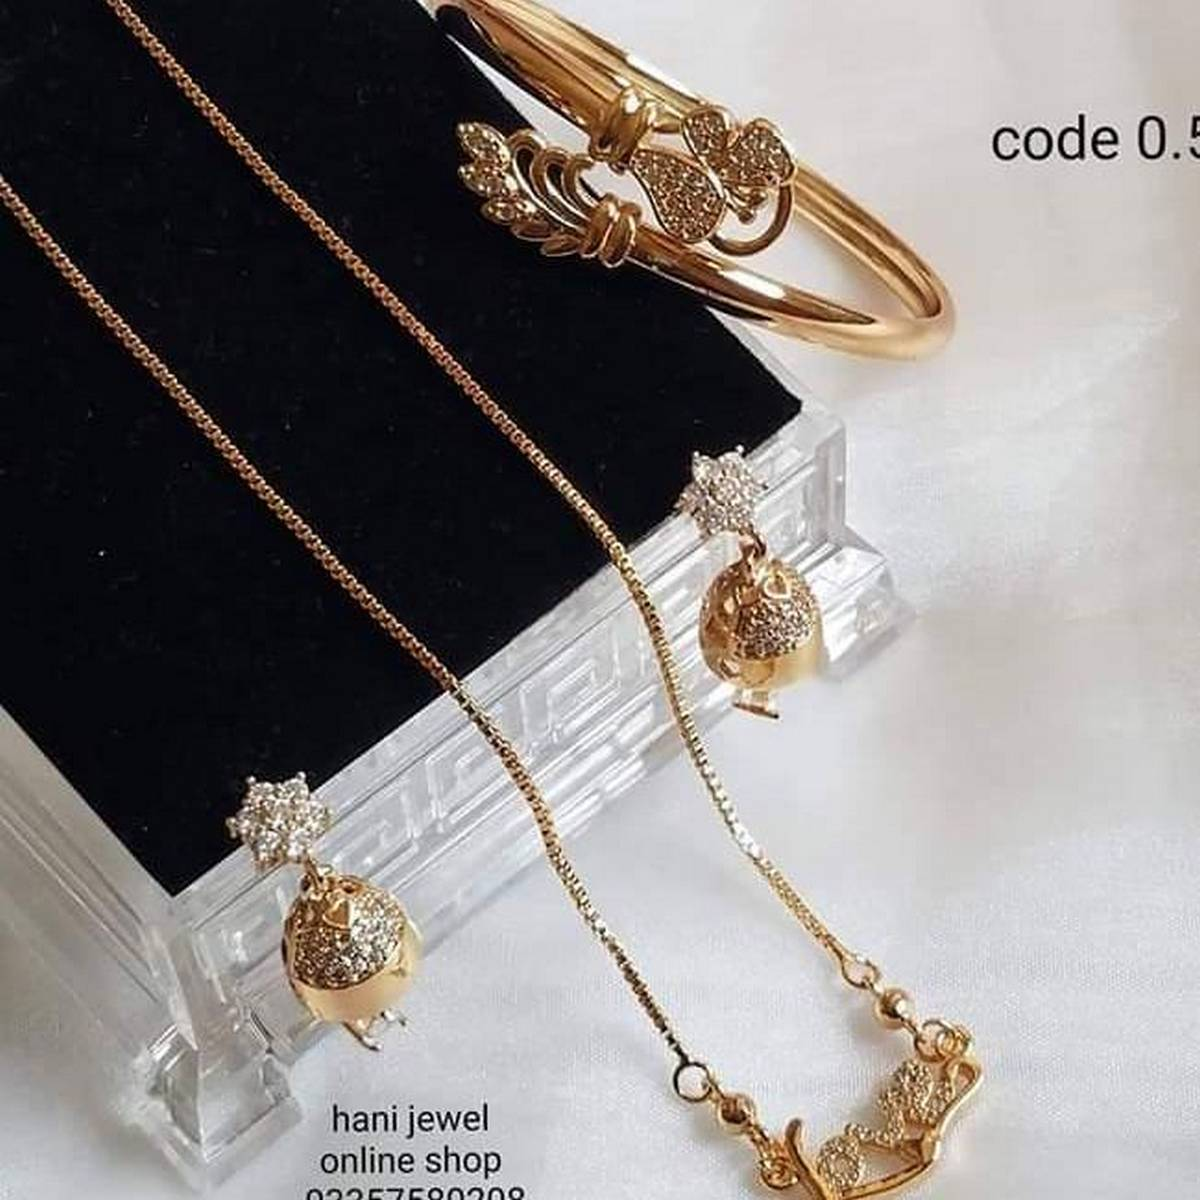 gold pleted set looking gold fine quilty with finger ring or braceletes  New fashionable standerd design for her  Long lasting polish